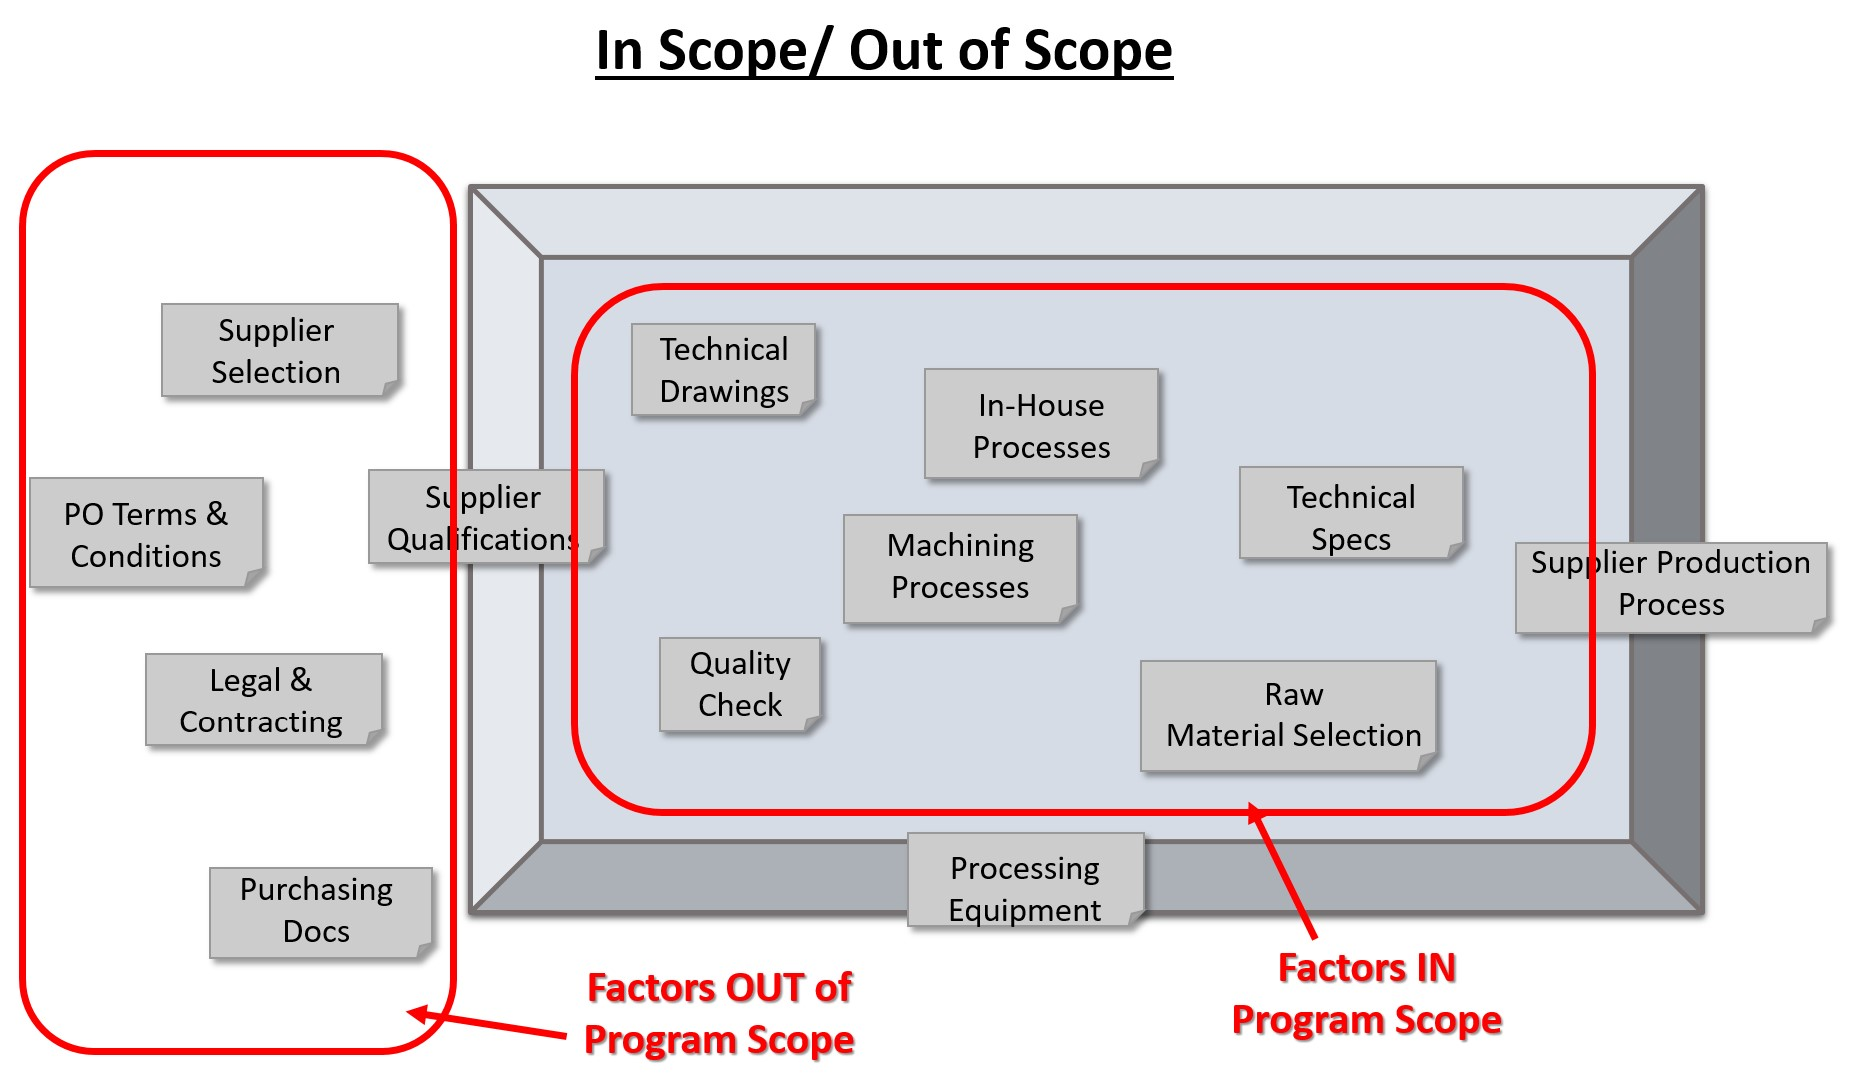 Organizing Factors as In Scope or Out of Scope